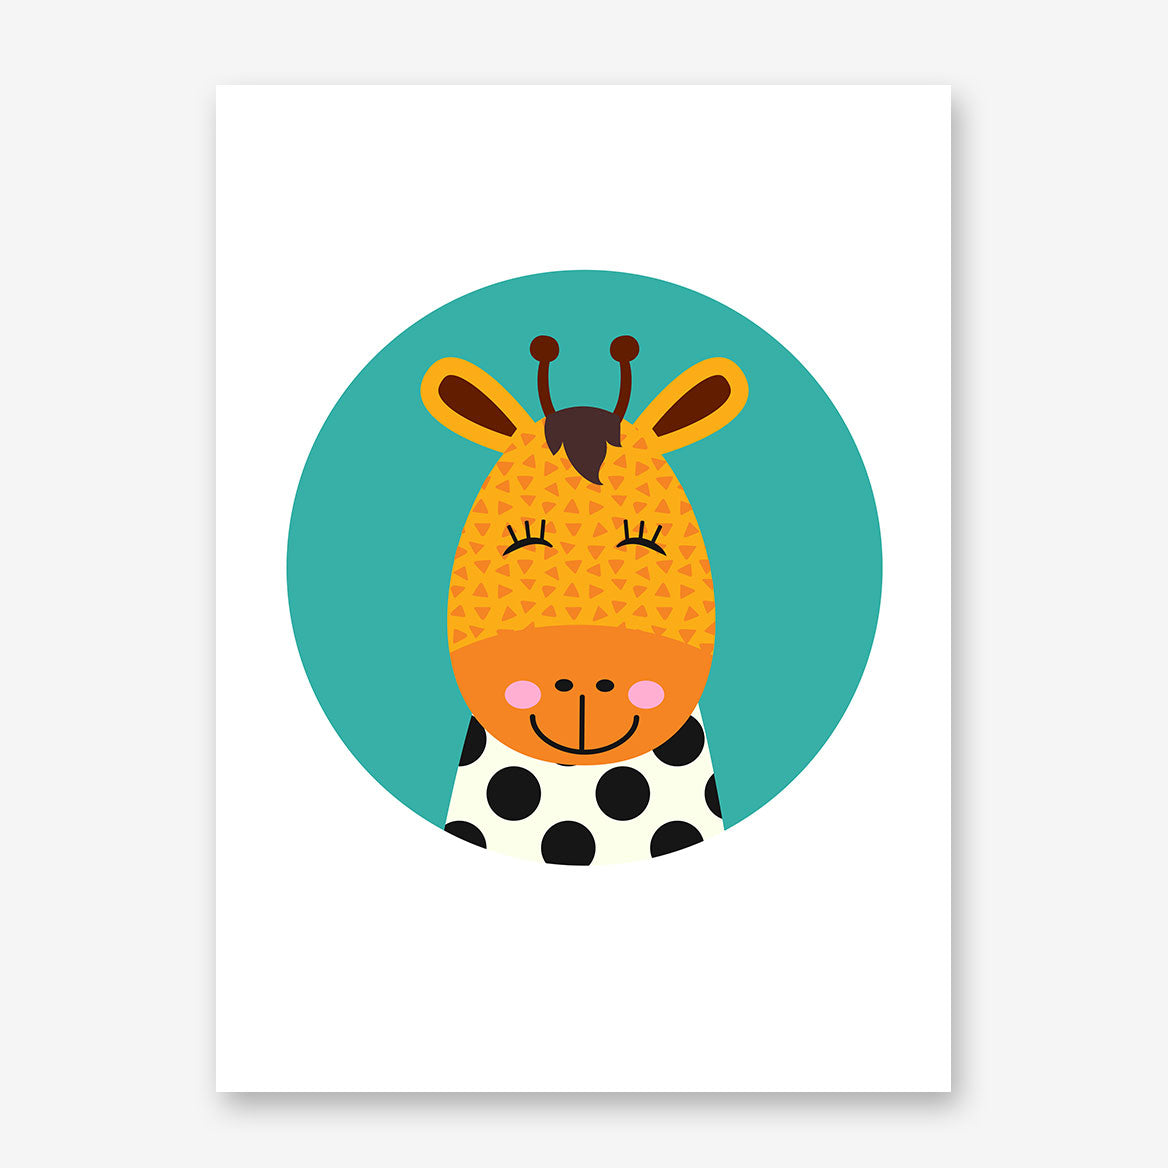 Nursery poster print with a smiley giraffe in a blue circle.